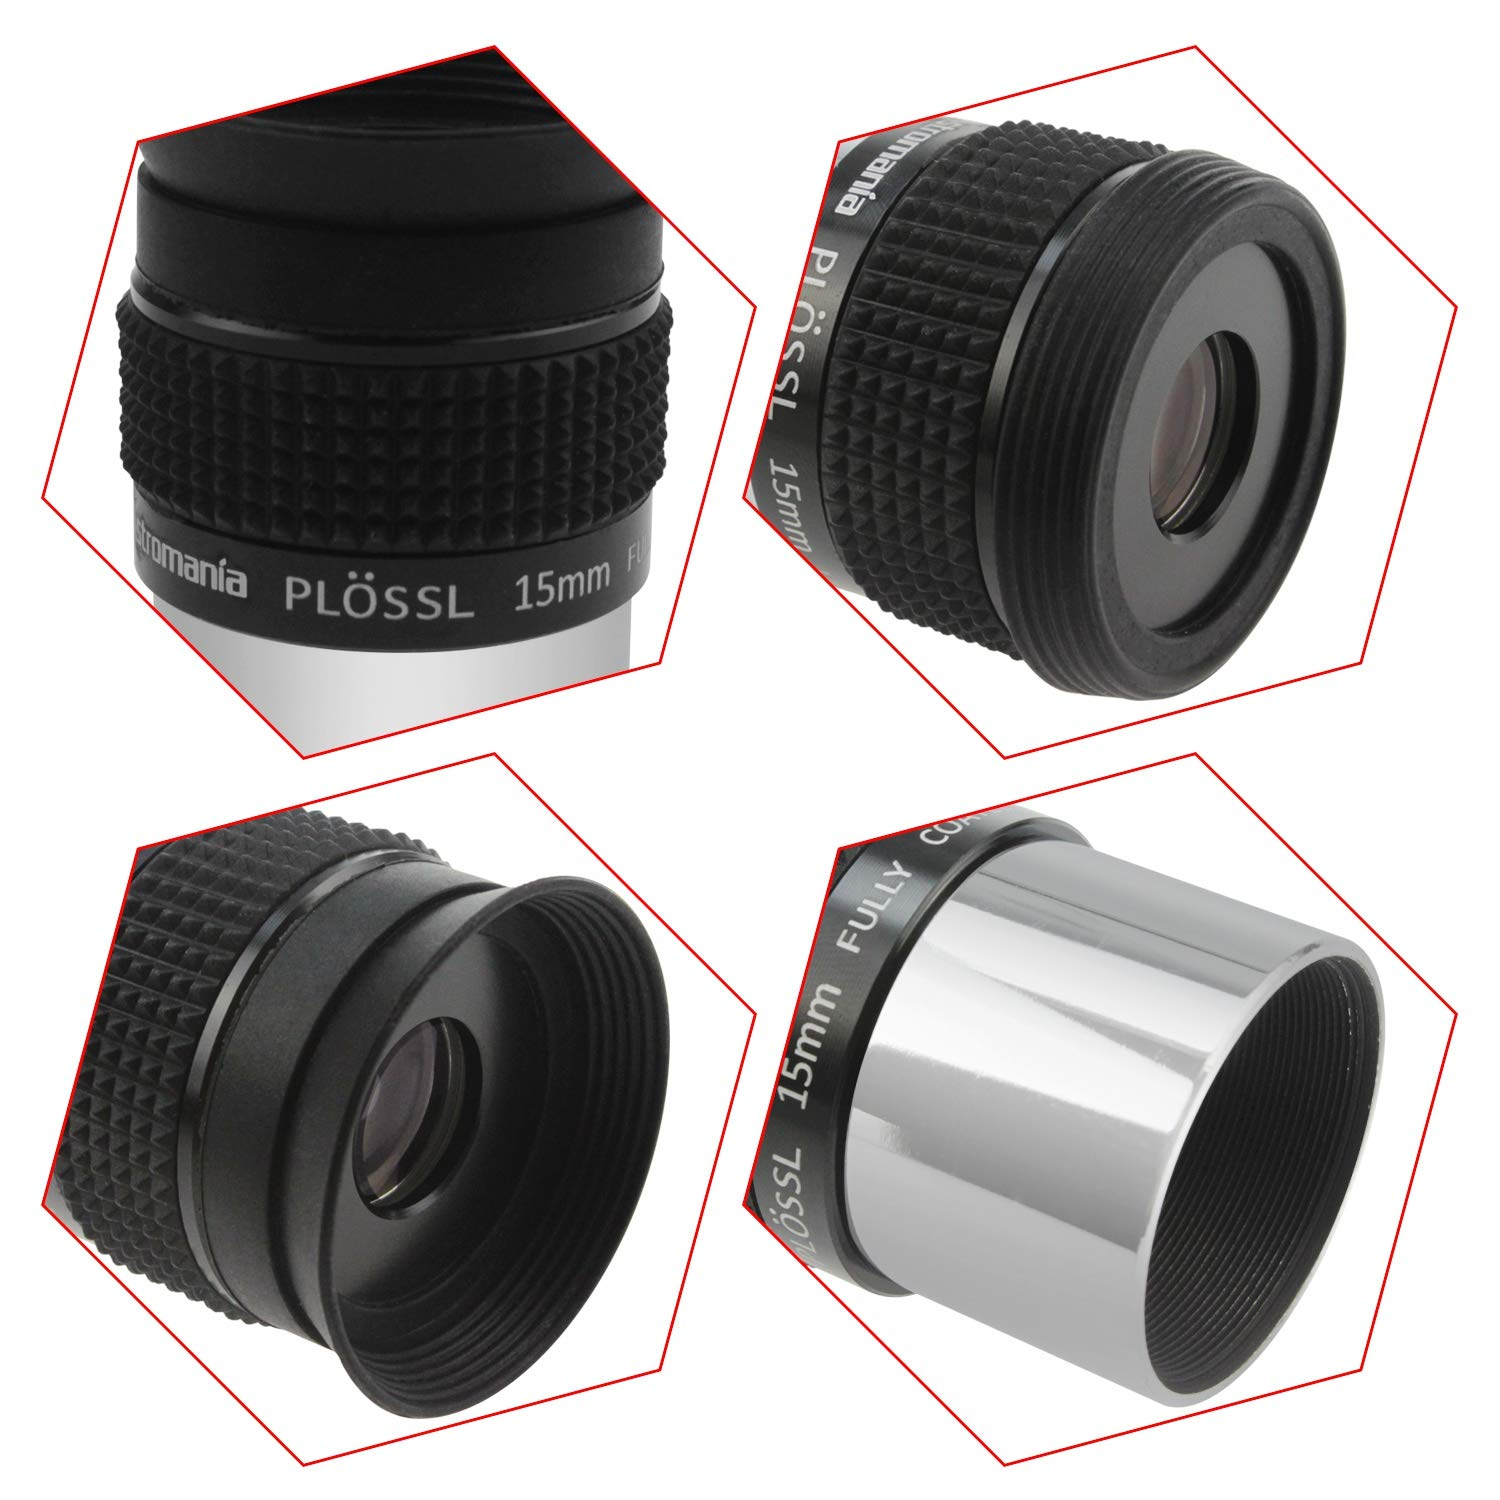 Astromania 1.25 10mm Plossl Telescope Eyepiece Threaded for Standard 1.25inch Astronomy Filters 4-Element Plossl Design